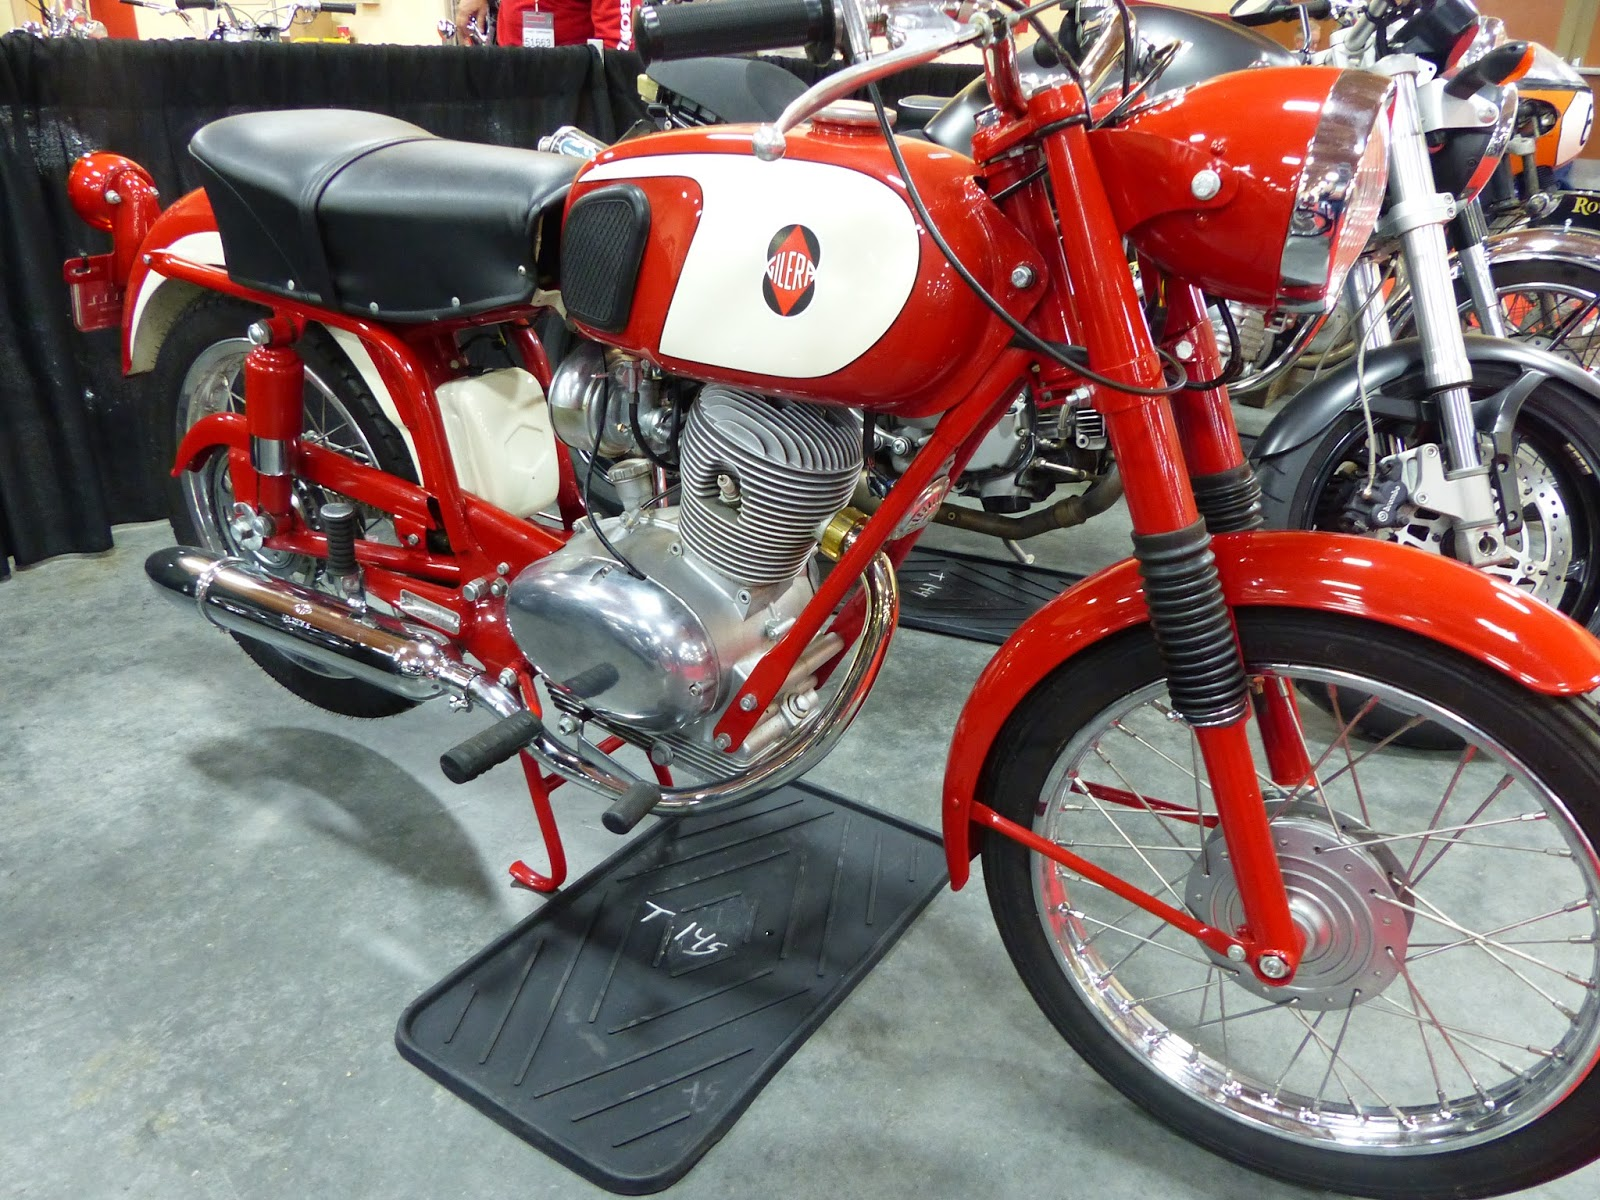 1968 Gilera 106SS For Sale At The 2016 Mecum Las Vegas Motorcycle Auction